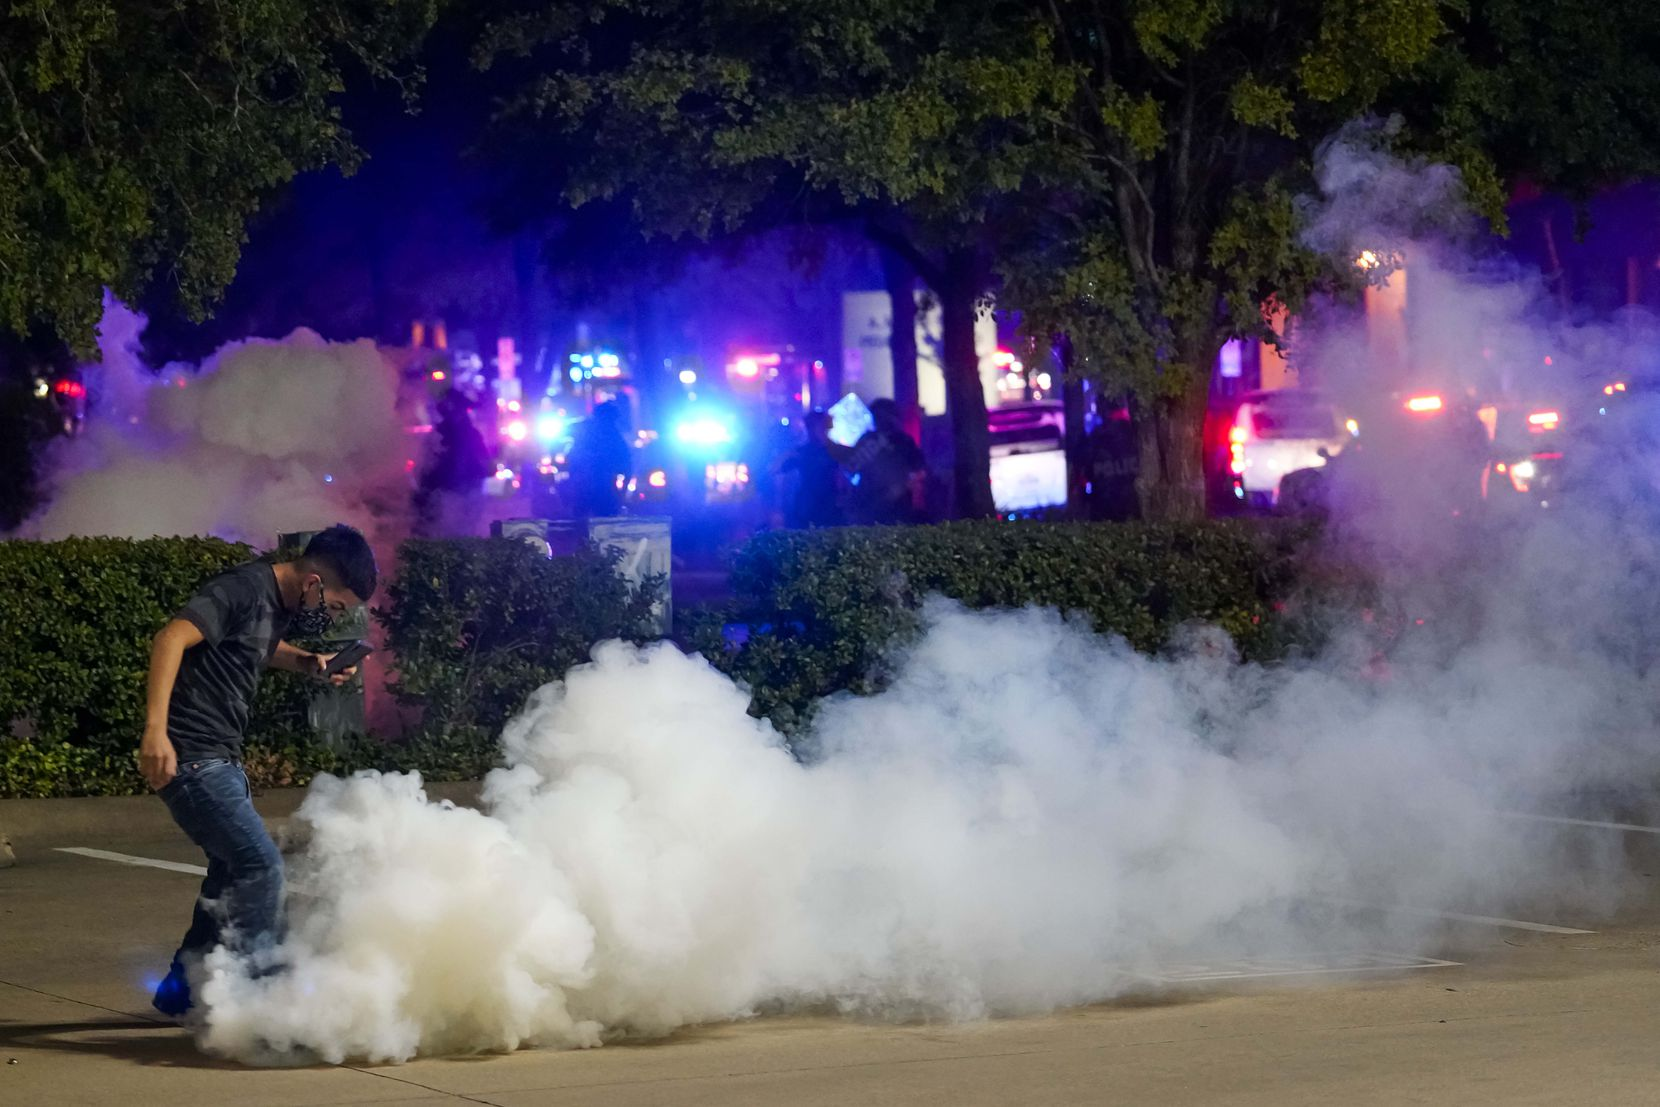 A protester tries to kick away a canister of teargas after it landed at his feat as Dallas police attempt to disperse protesters at the corner of Lamar and Young Streets as they march against police brutality on Friday, May 29, 2020, in Dallas.